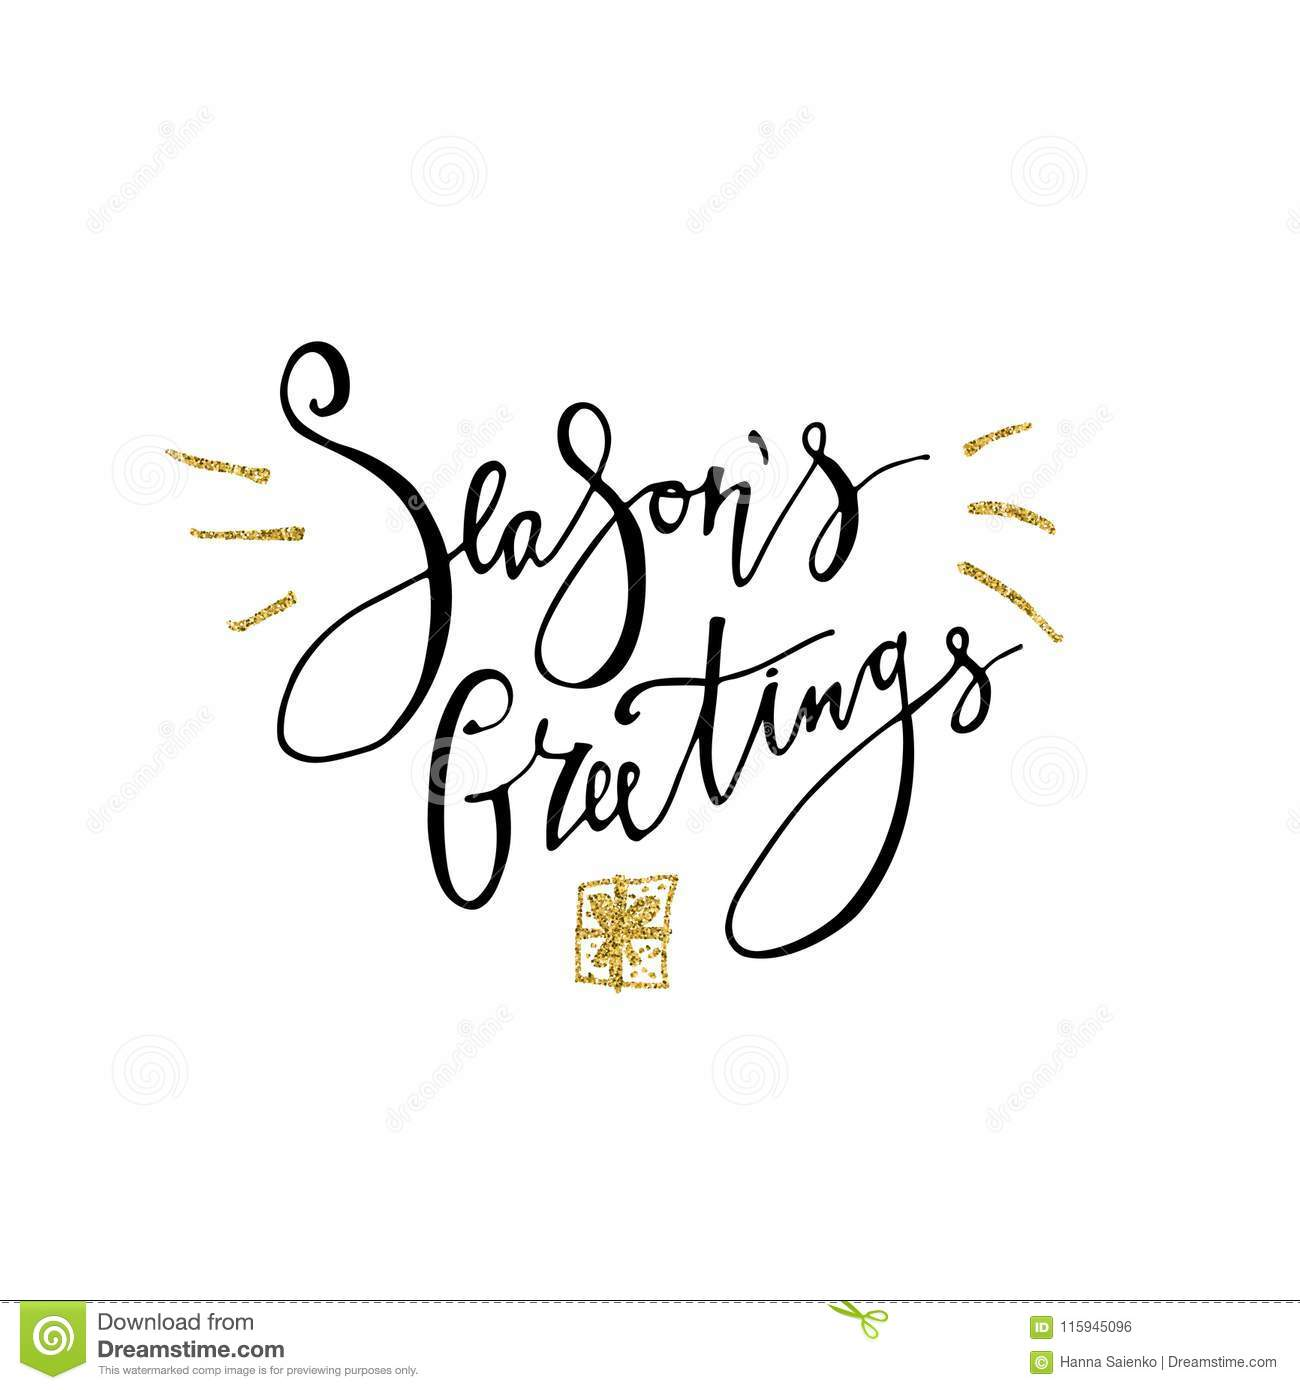 Seasons greetings card calligraphy phrase with gold glitter present seasons greetings card calligraphy phrase with gold glitter present modern lettering new year card used for greeting card valentines day banner m4hsunfo